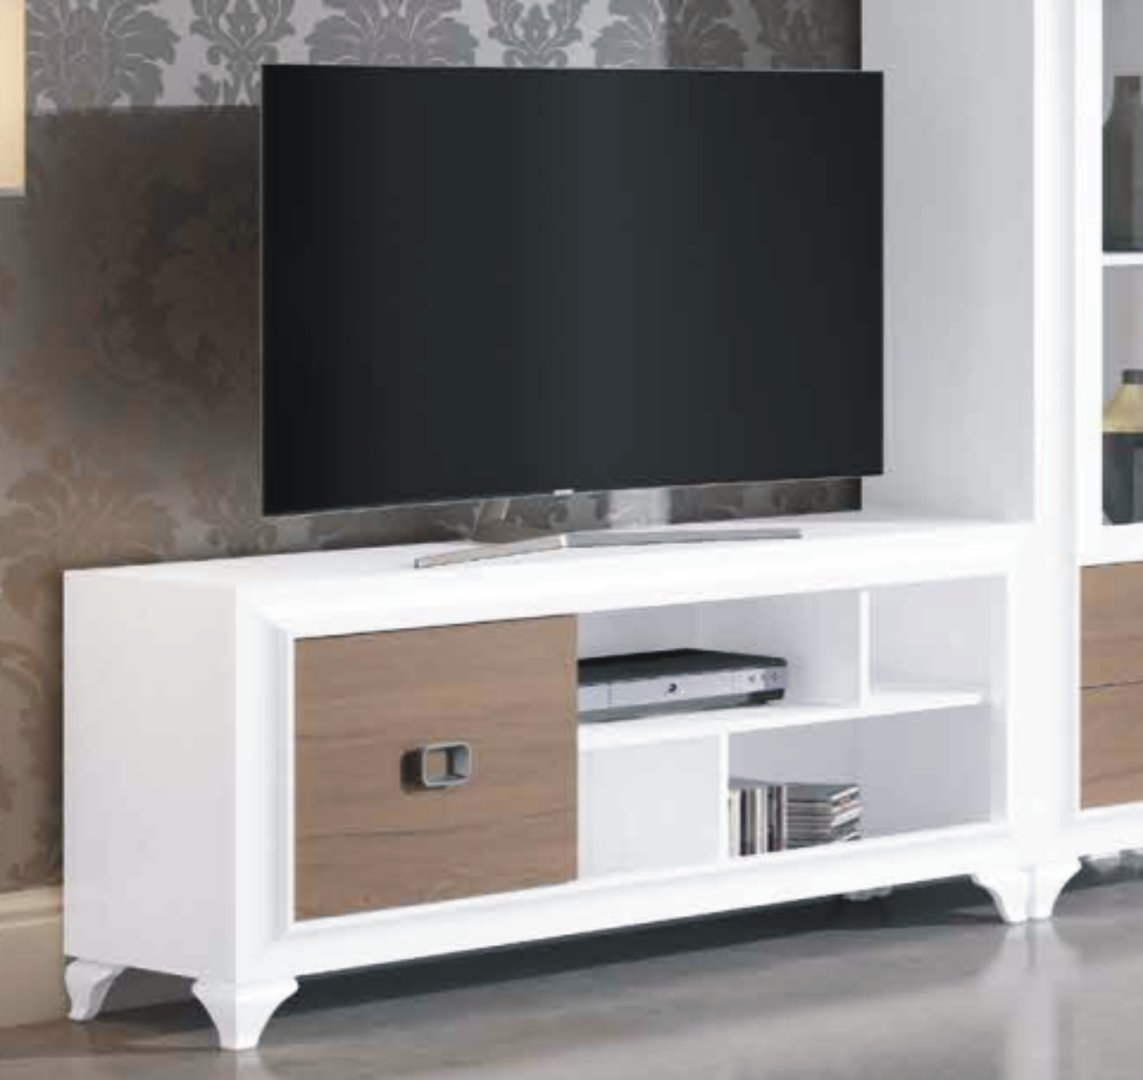 Mito 140cm TV Unit 1 Door White & Victoria